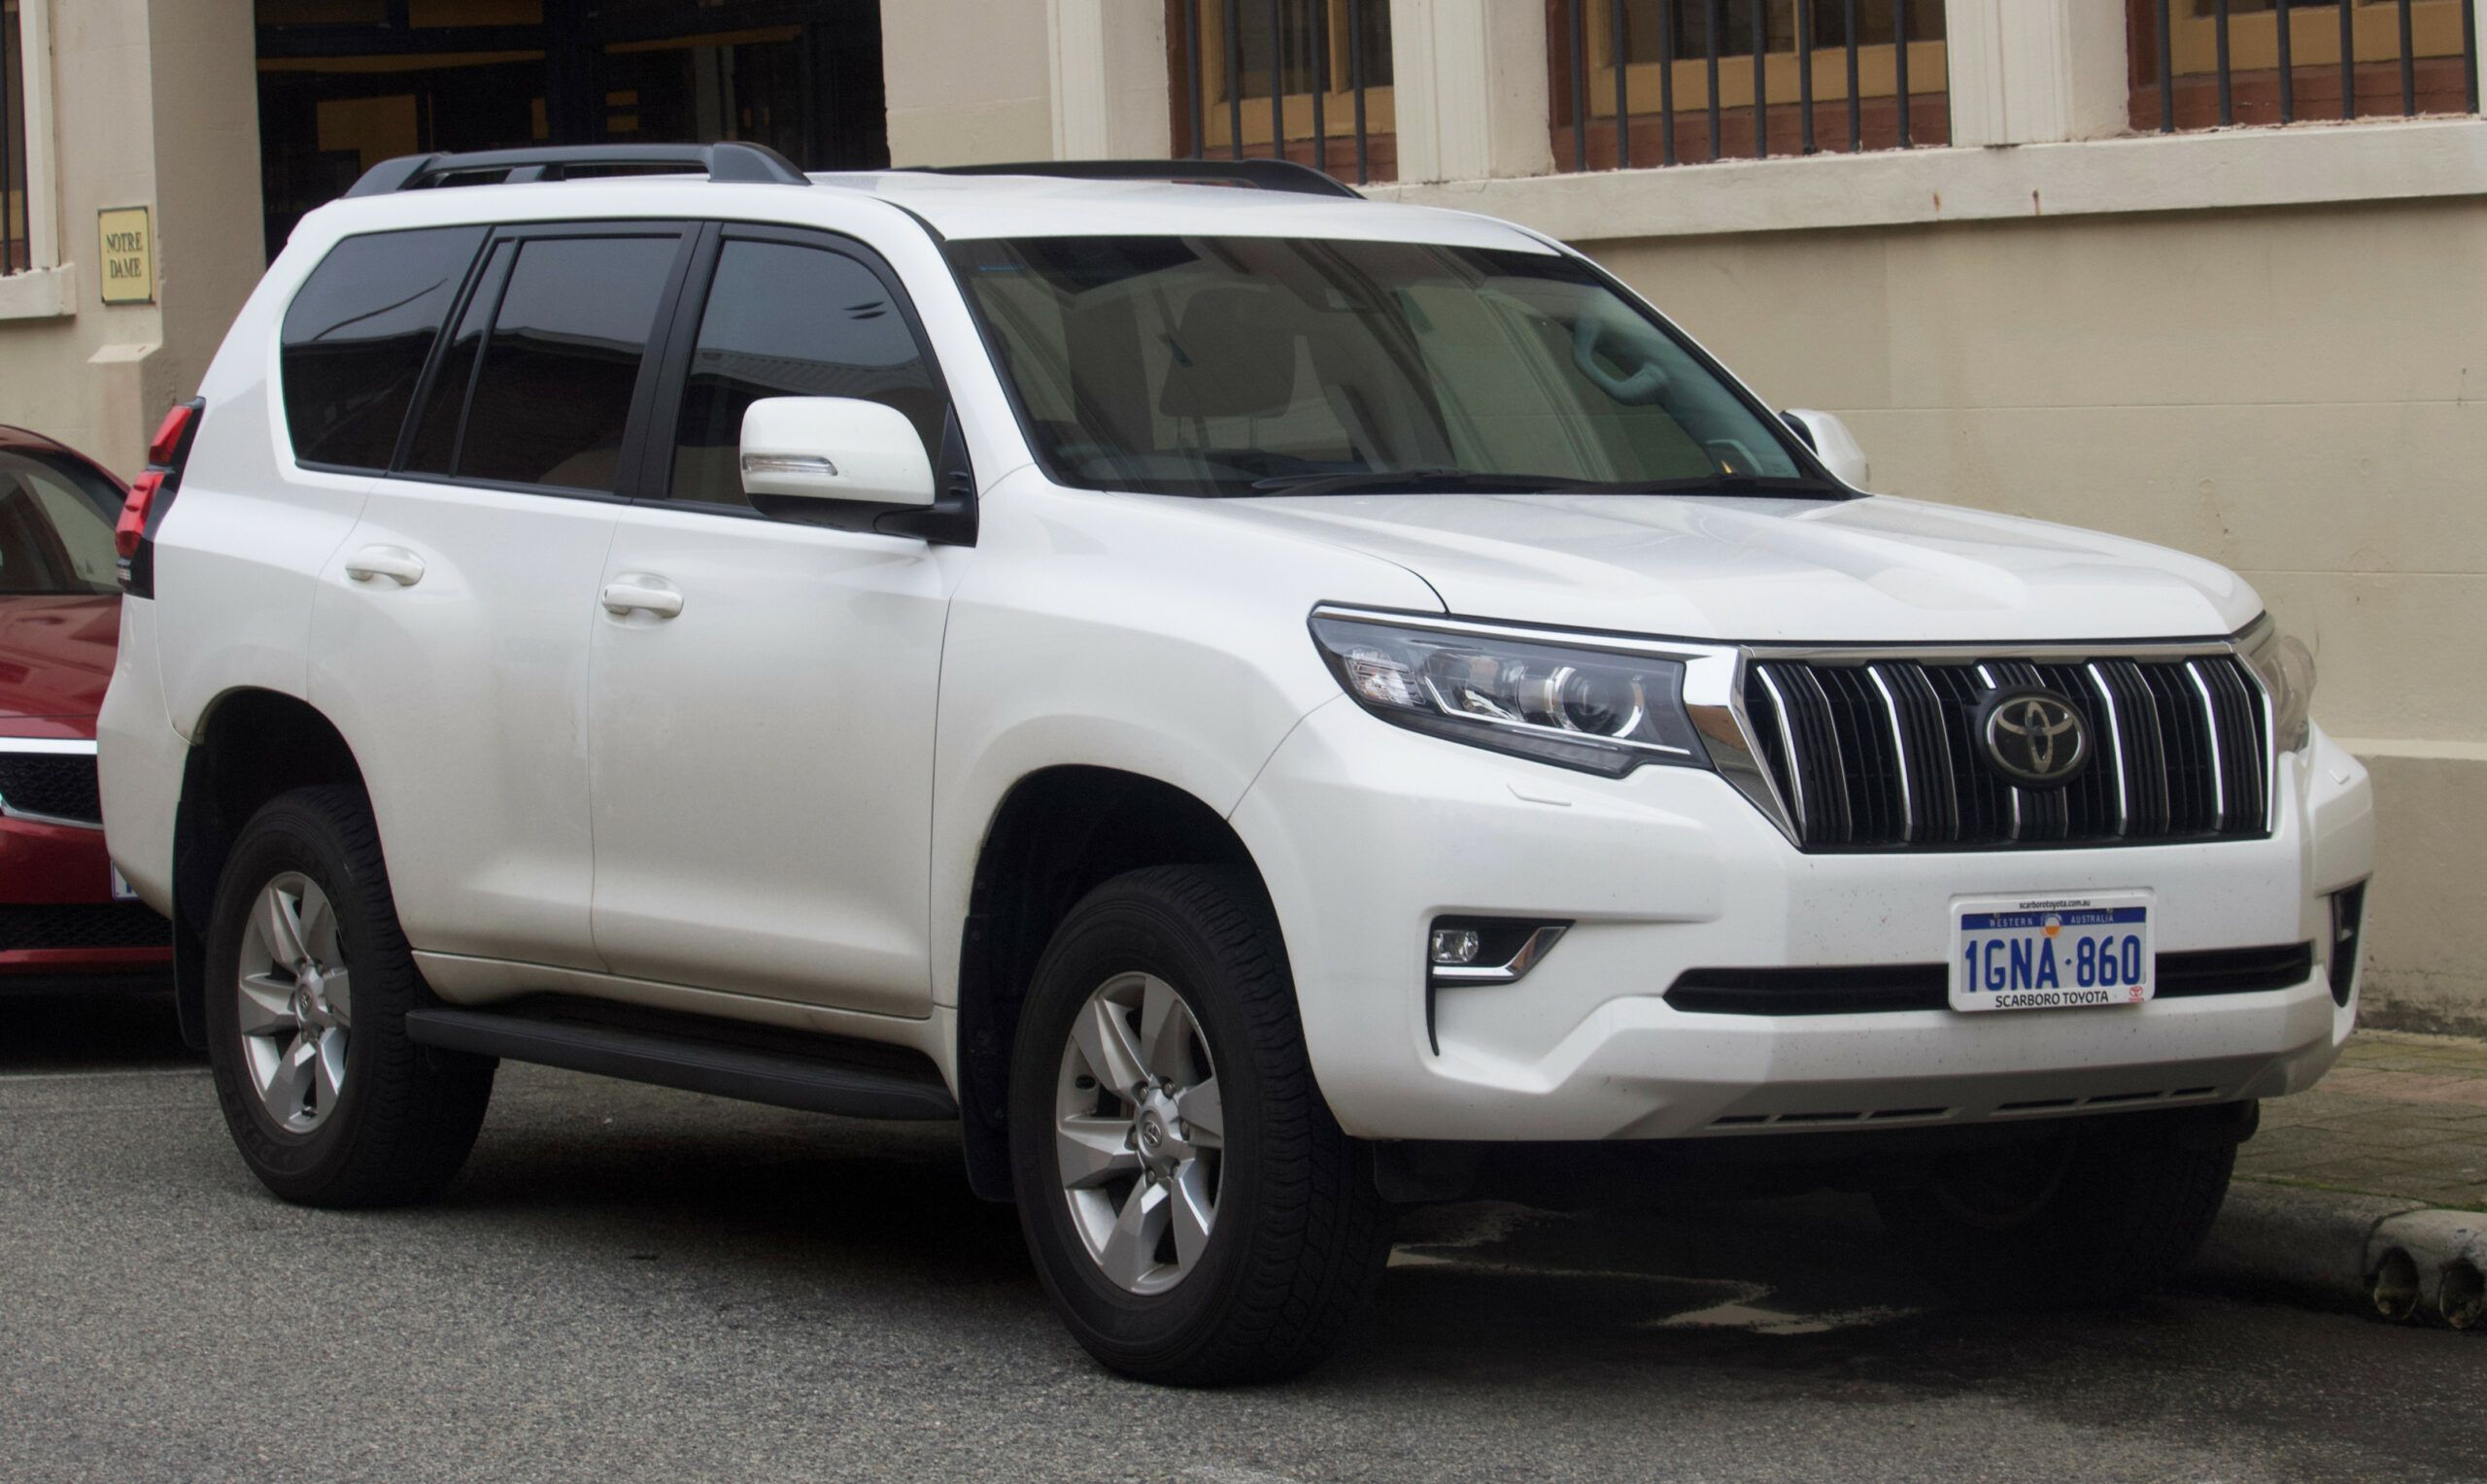 Toyota Land Cruiser 2021 Price In Pakistan Research New Toyota Land Cruiser Prado Toyota Land Cruiser Land Cruiser